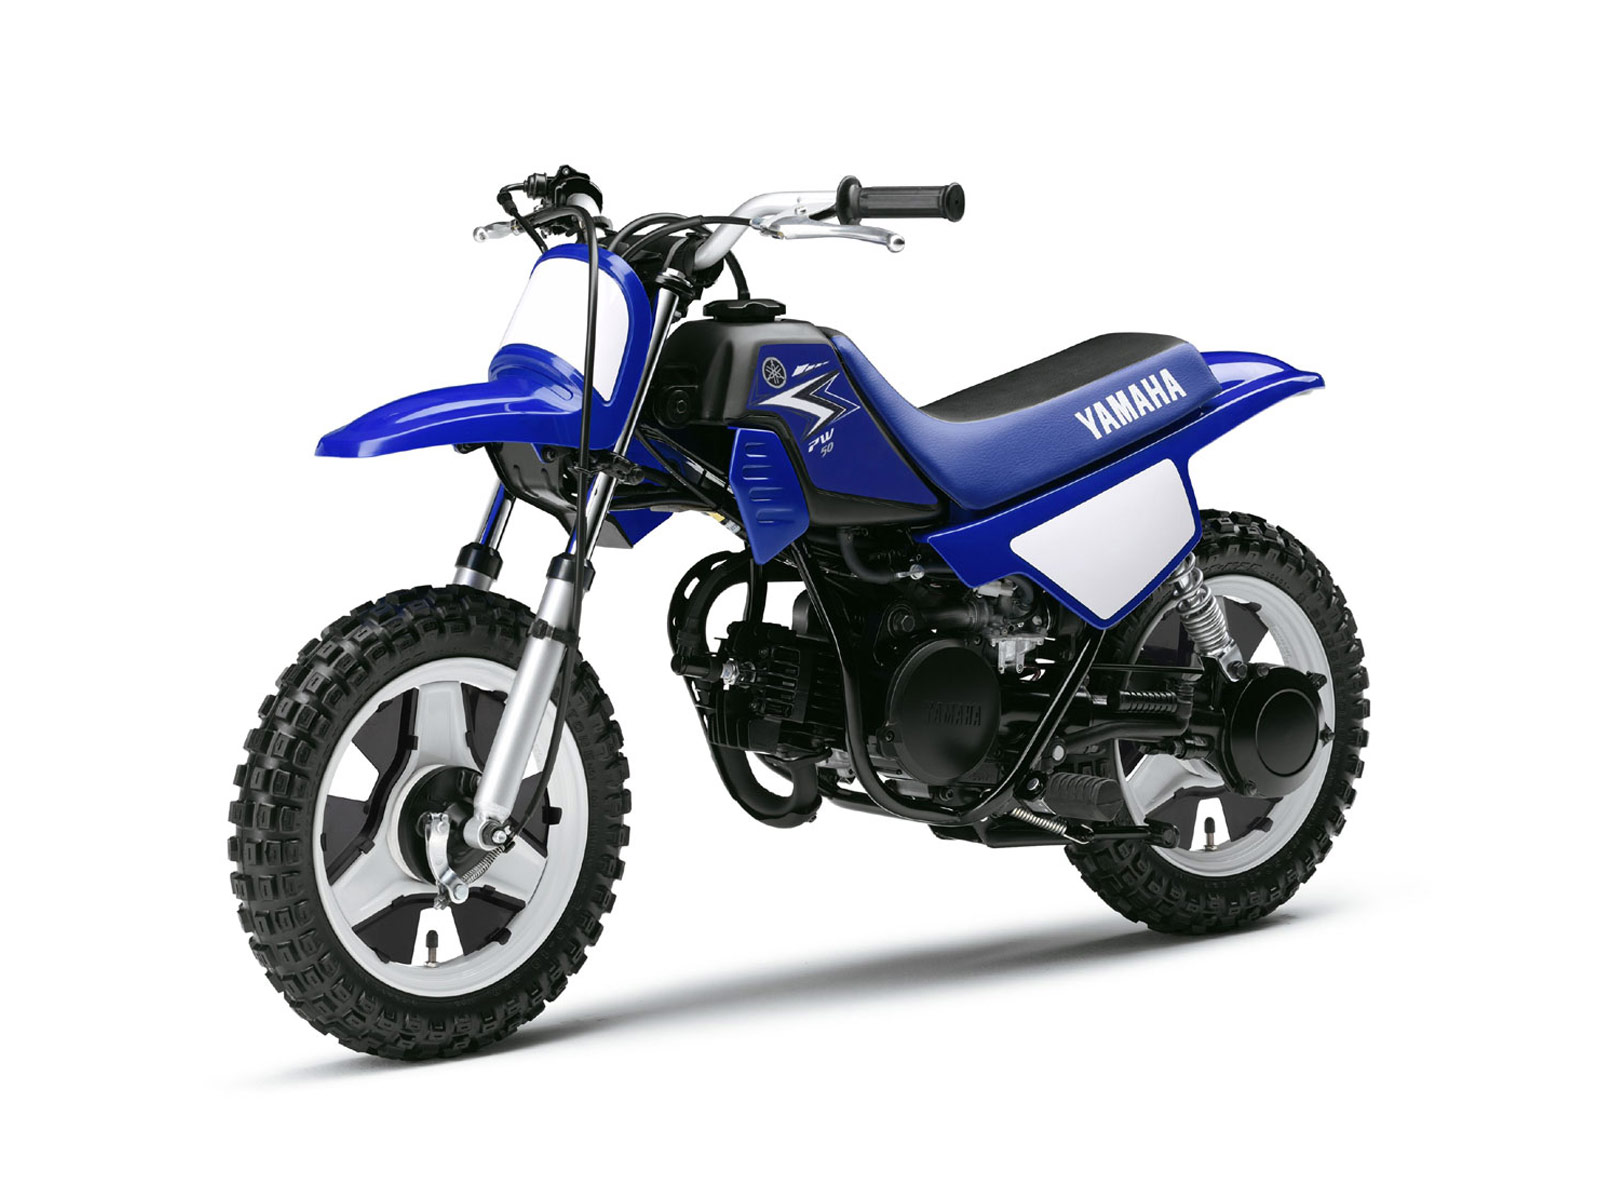 2011 yamaha pictures pw50 2 stroke specifications for Yamaha 2 stroke